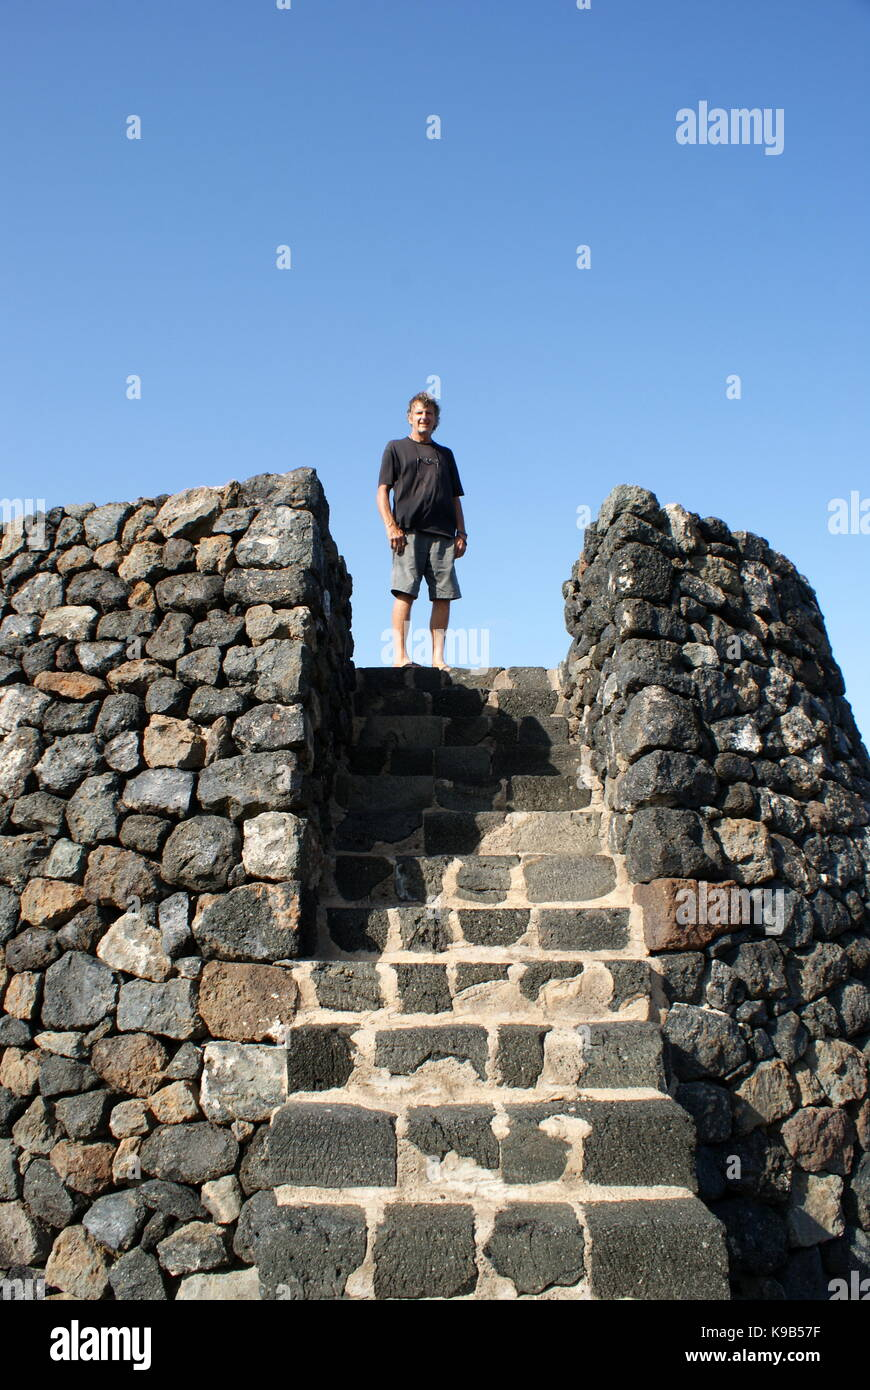 Man standing at the top of a black stone tower, Pantelleria - Stock Image